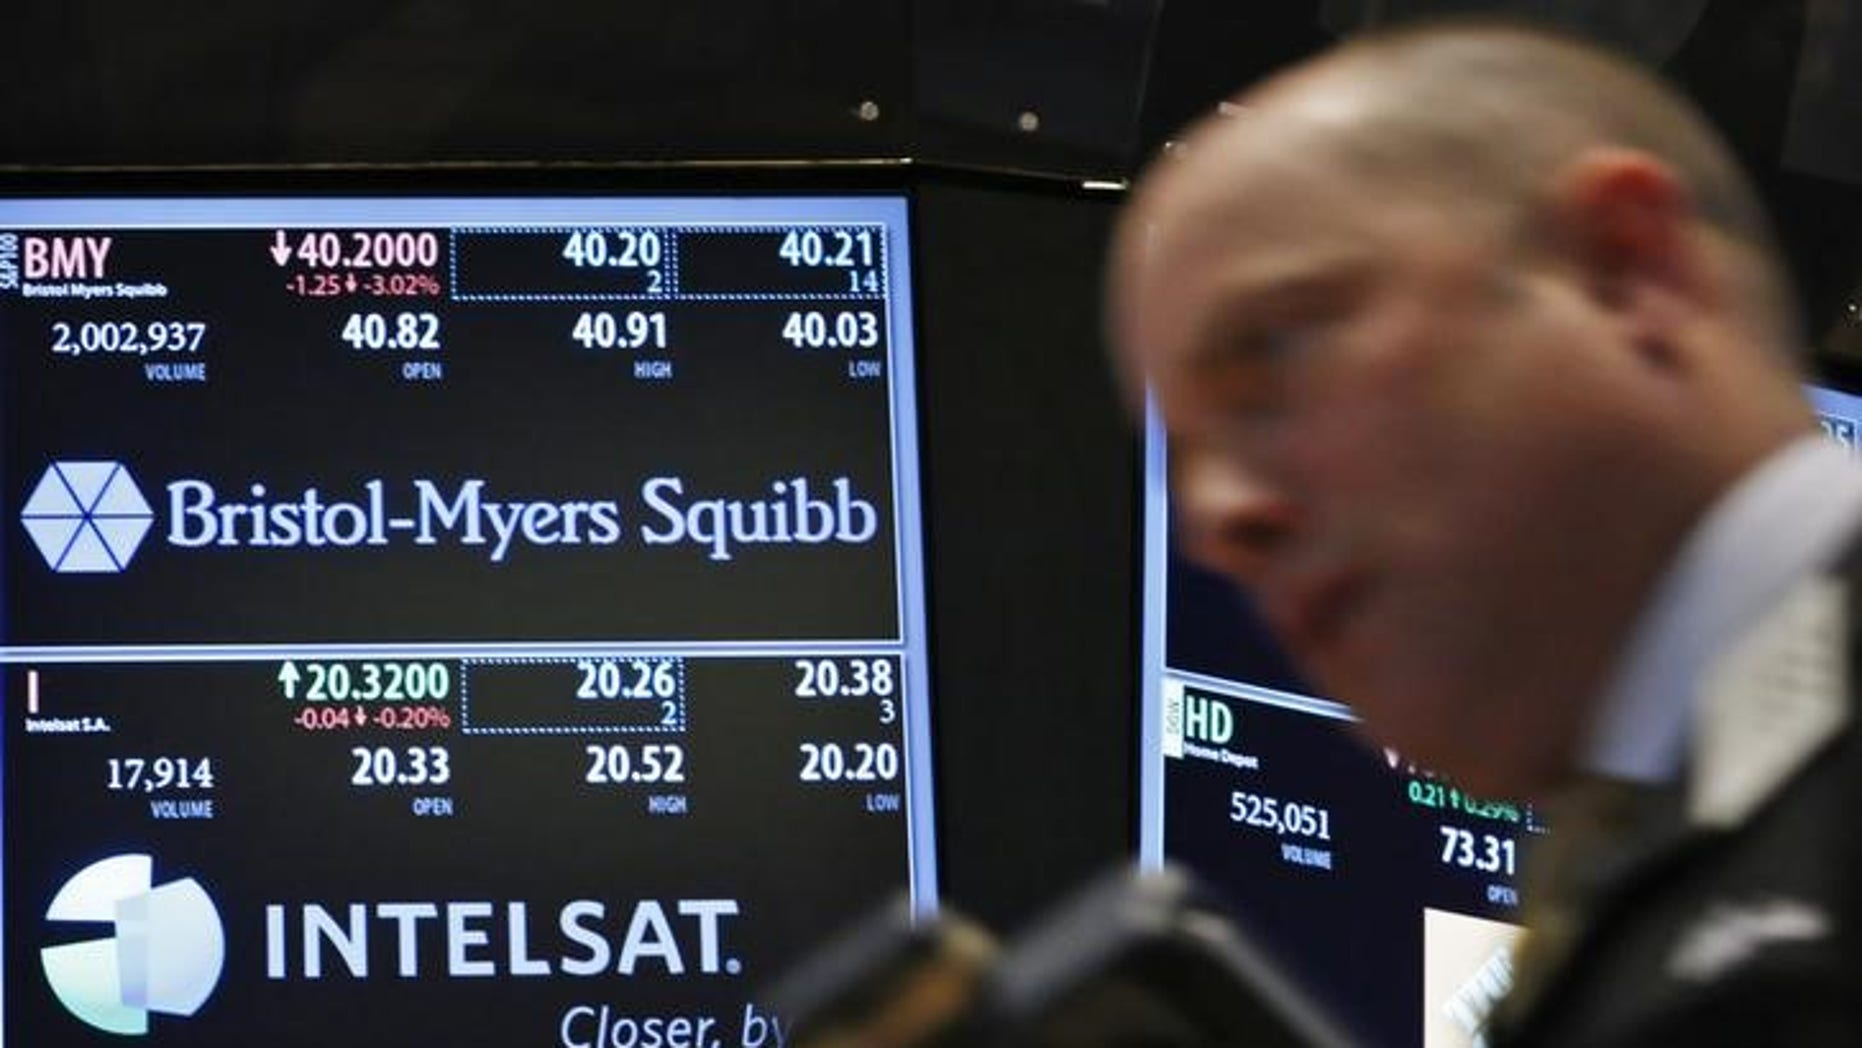 A trader passes by a screen displaying the tickers symbols for Bristol-Myers Squibb and Intelsat, Ltd. on the floor at the New York Stock Exchange